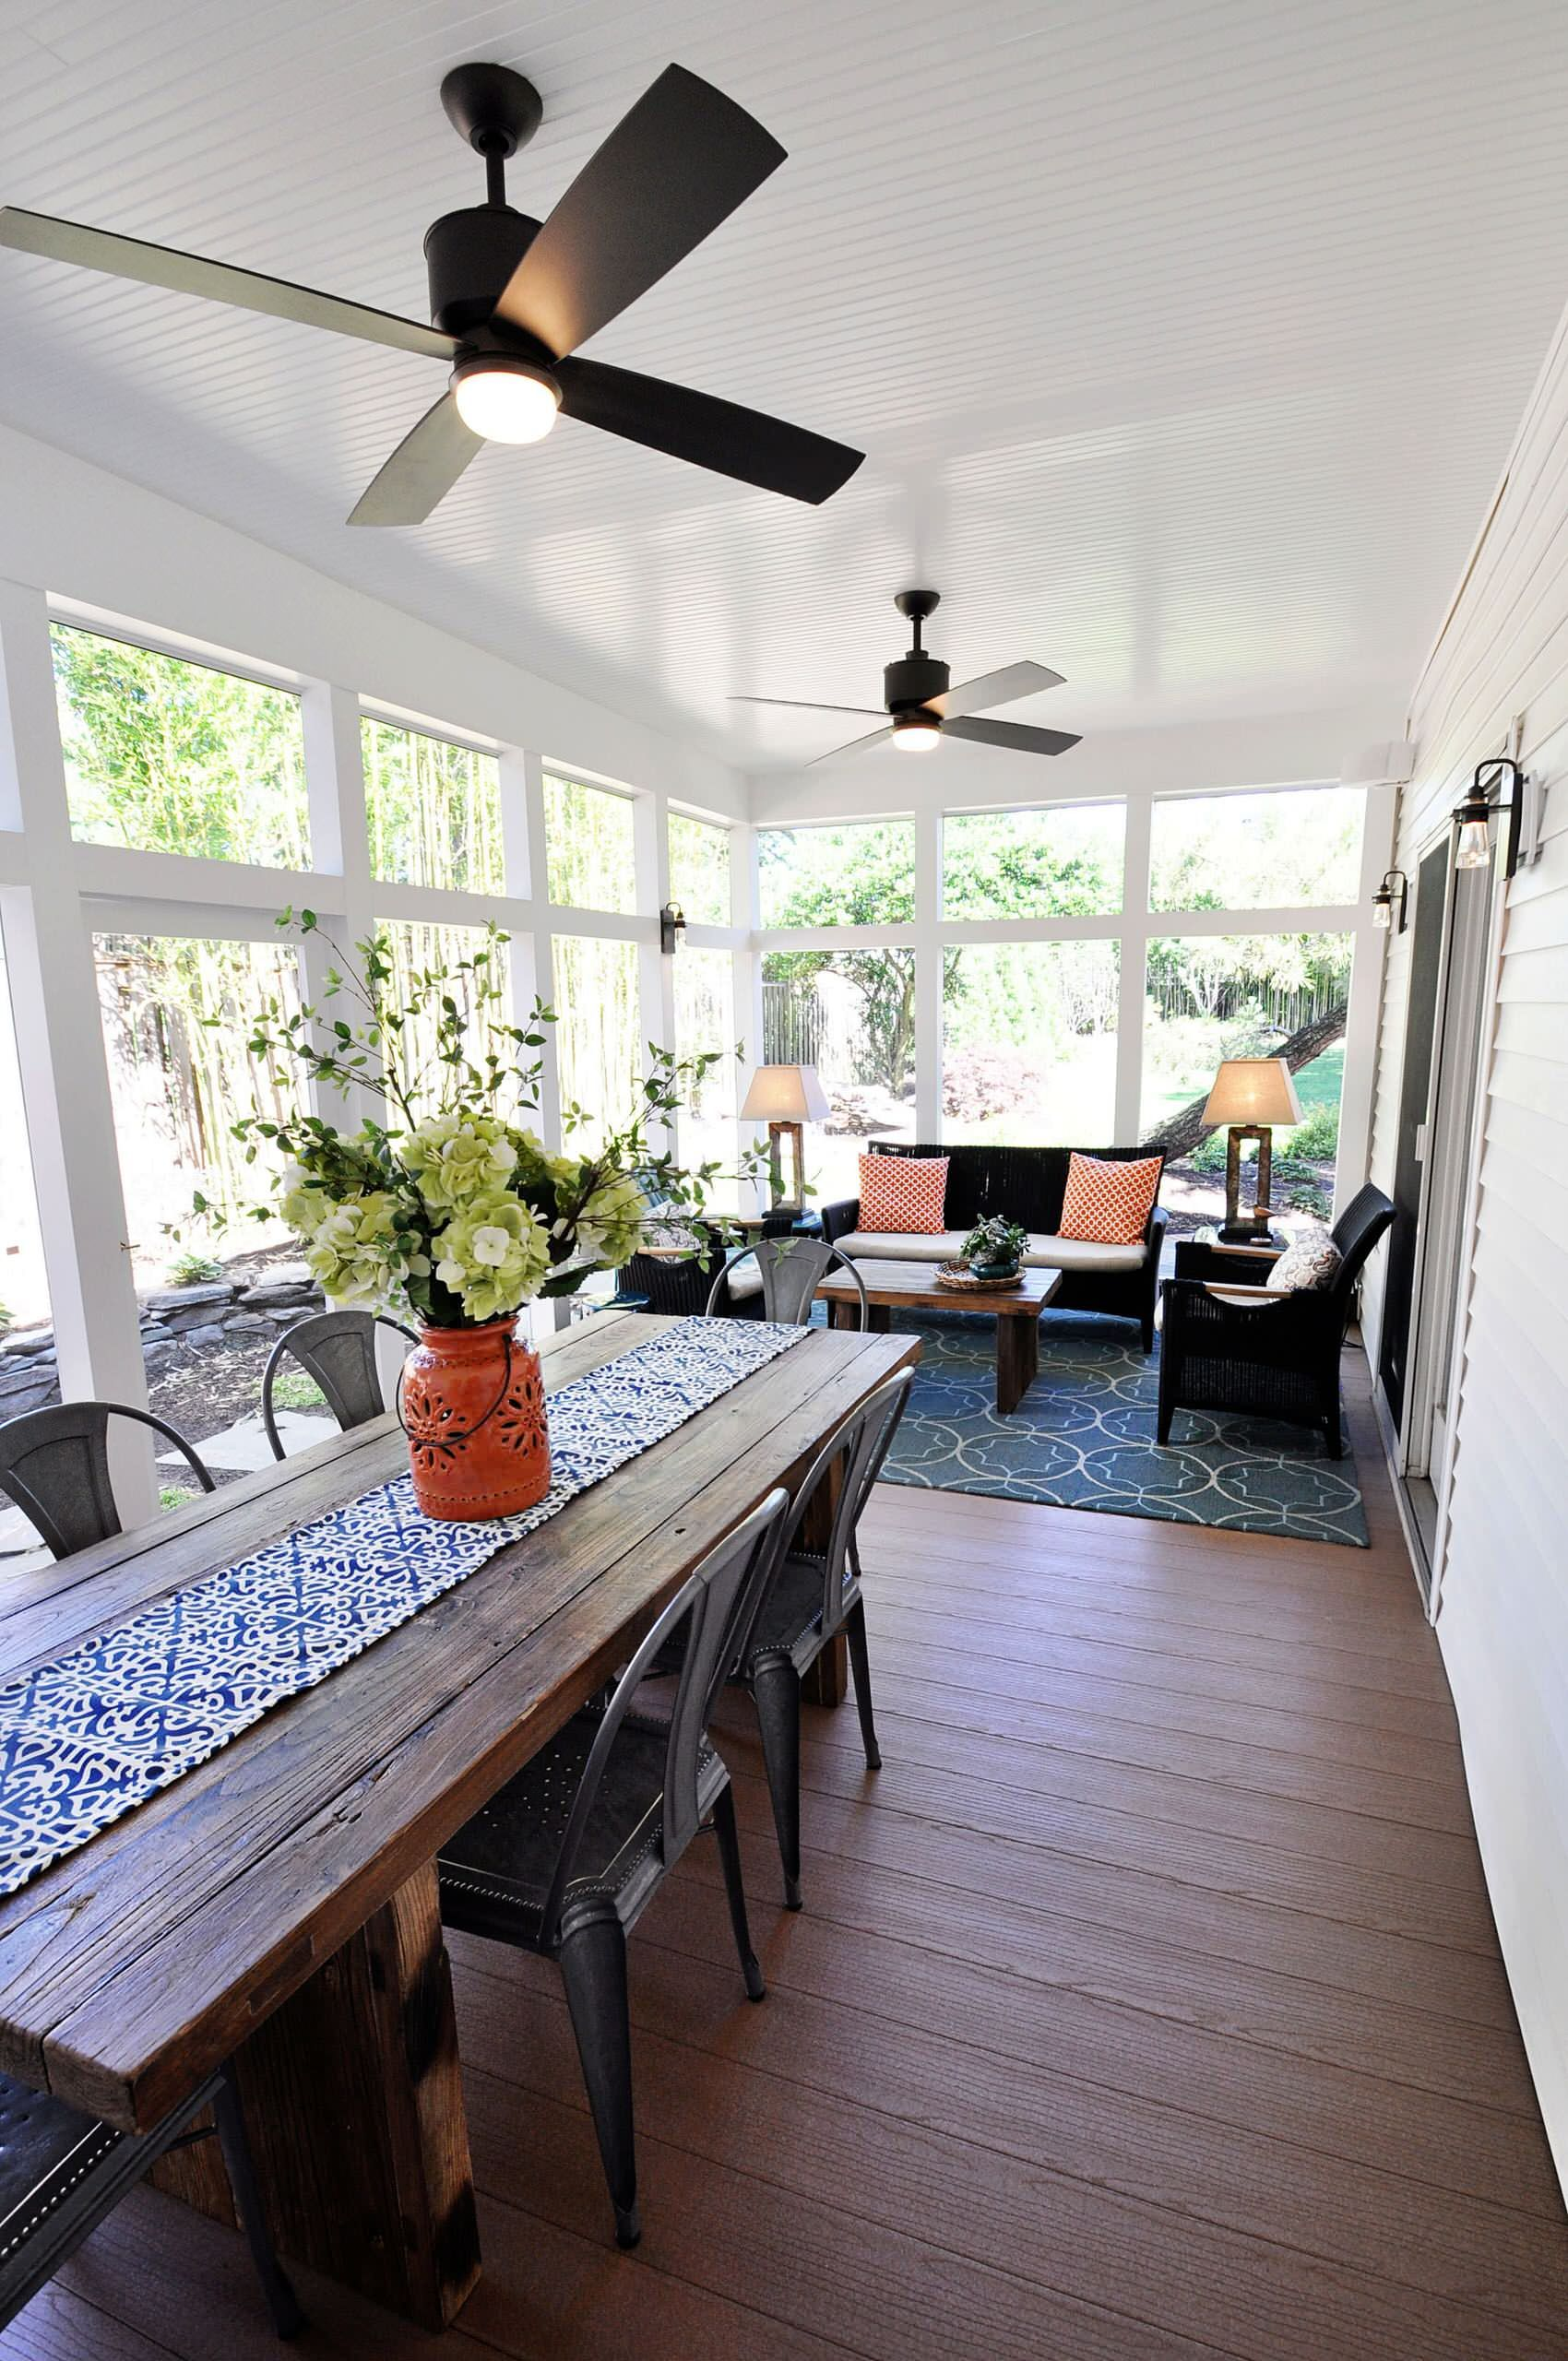 dining room, wooden floor, white wooden wall, wooden table, black chairs, wooden dining set, blue patterned rug, white wooden ceiling, black ceiling fan